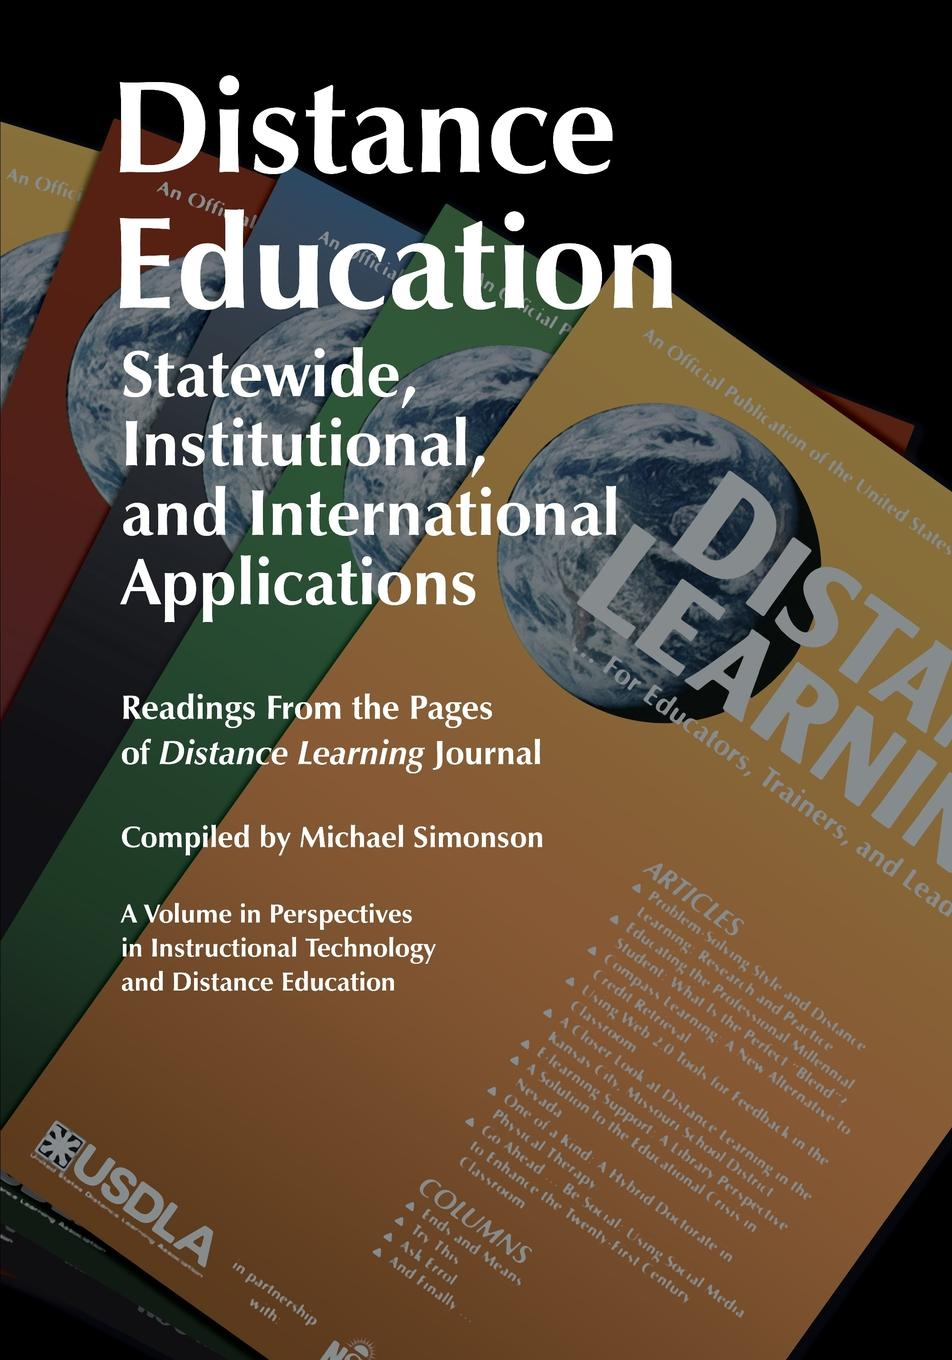 Distance Education. Statewide, Institutional, and International Applications: Readings from the Pages of Distance Learning Journal